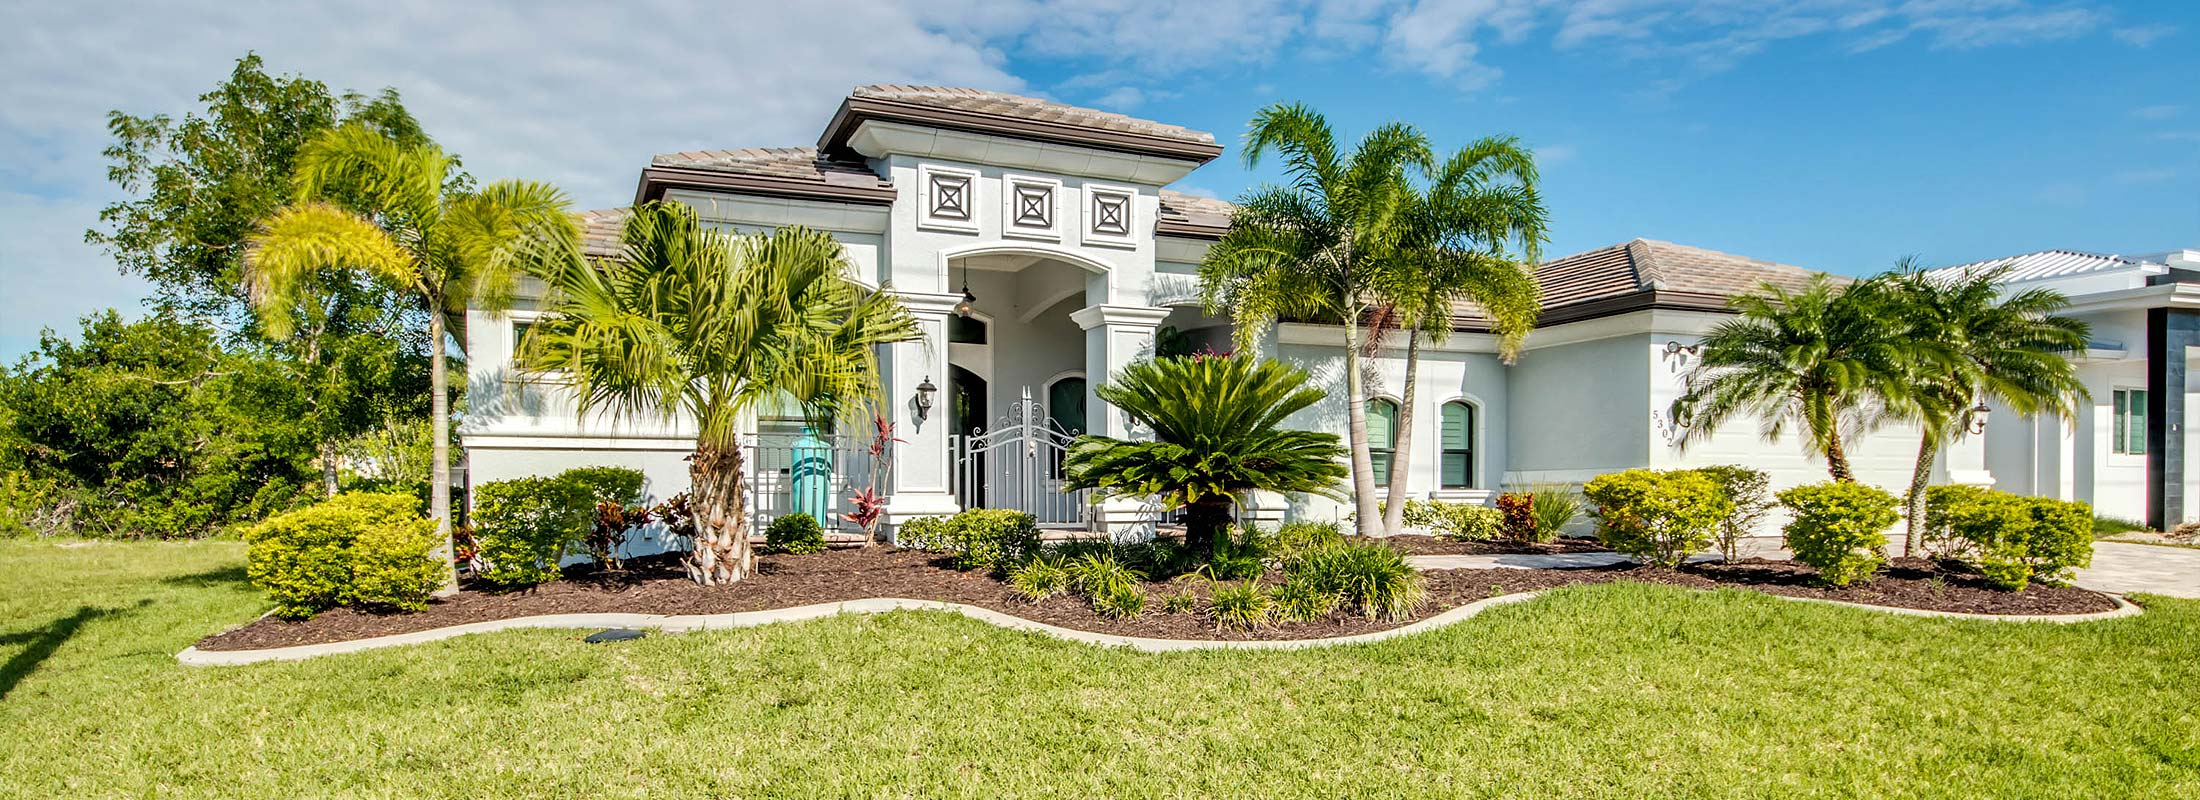 NMB Florida Immobilien